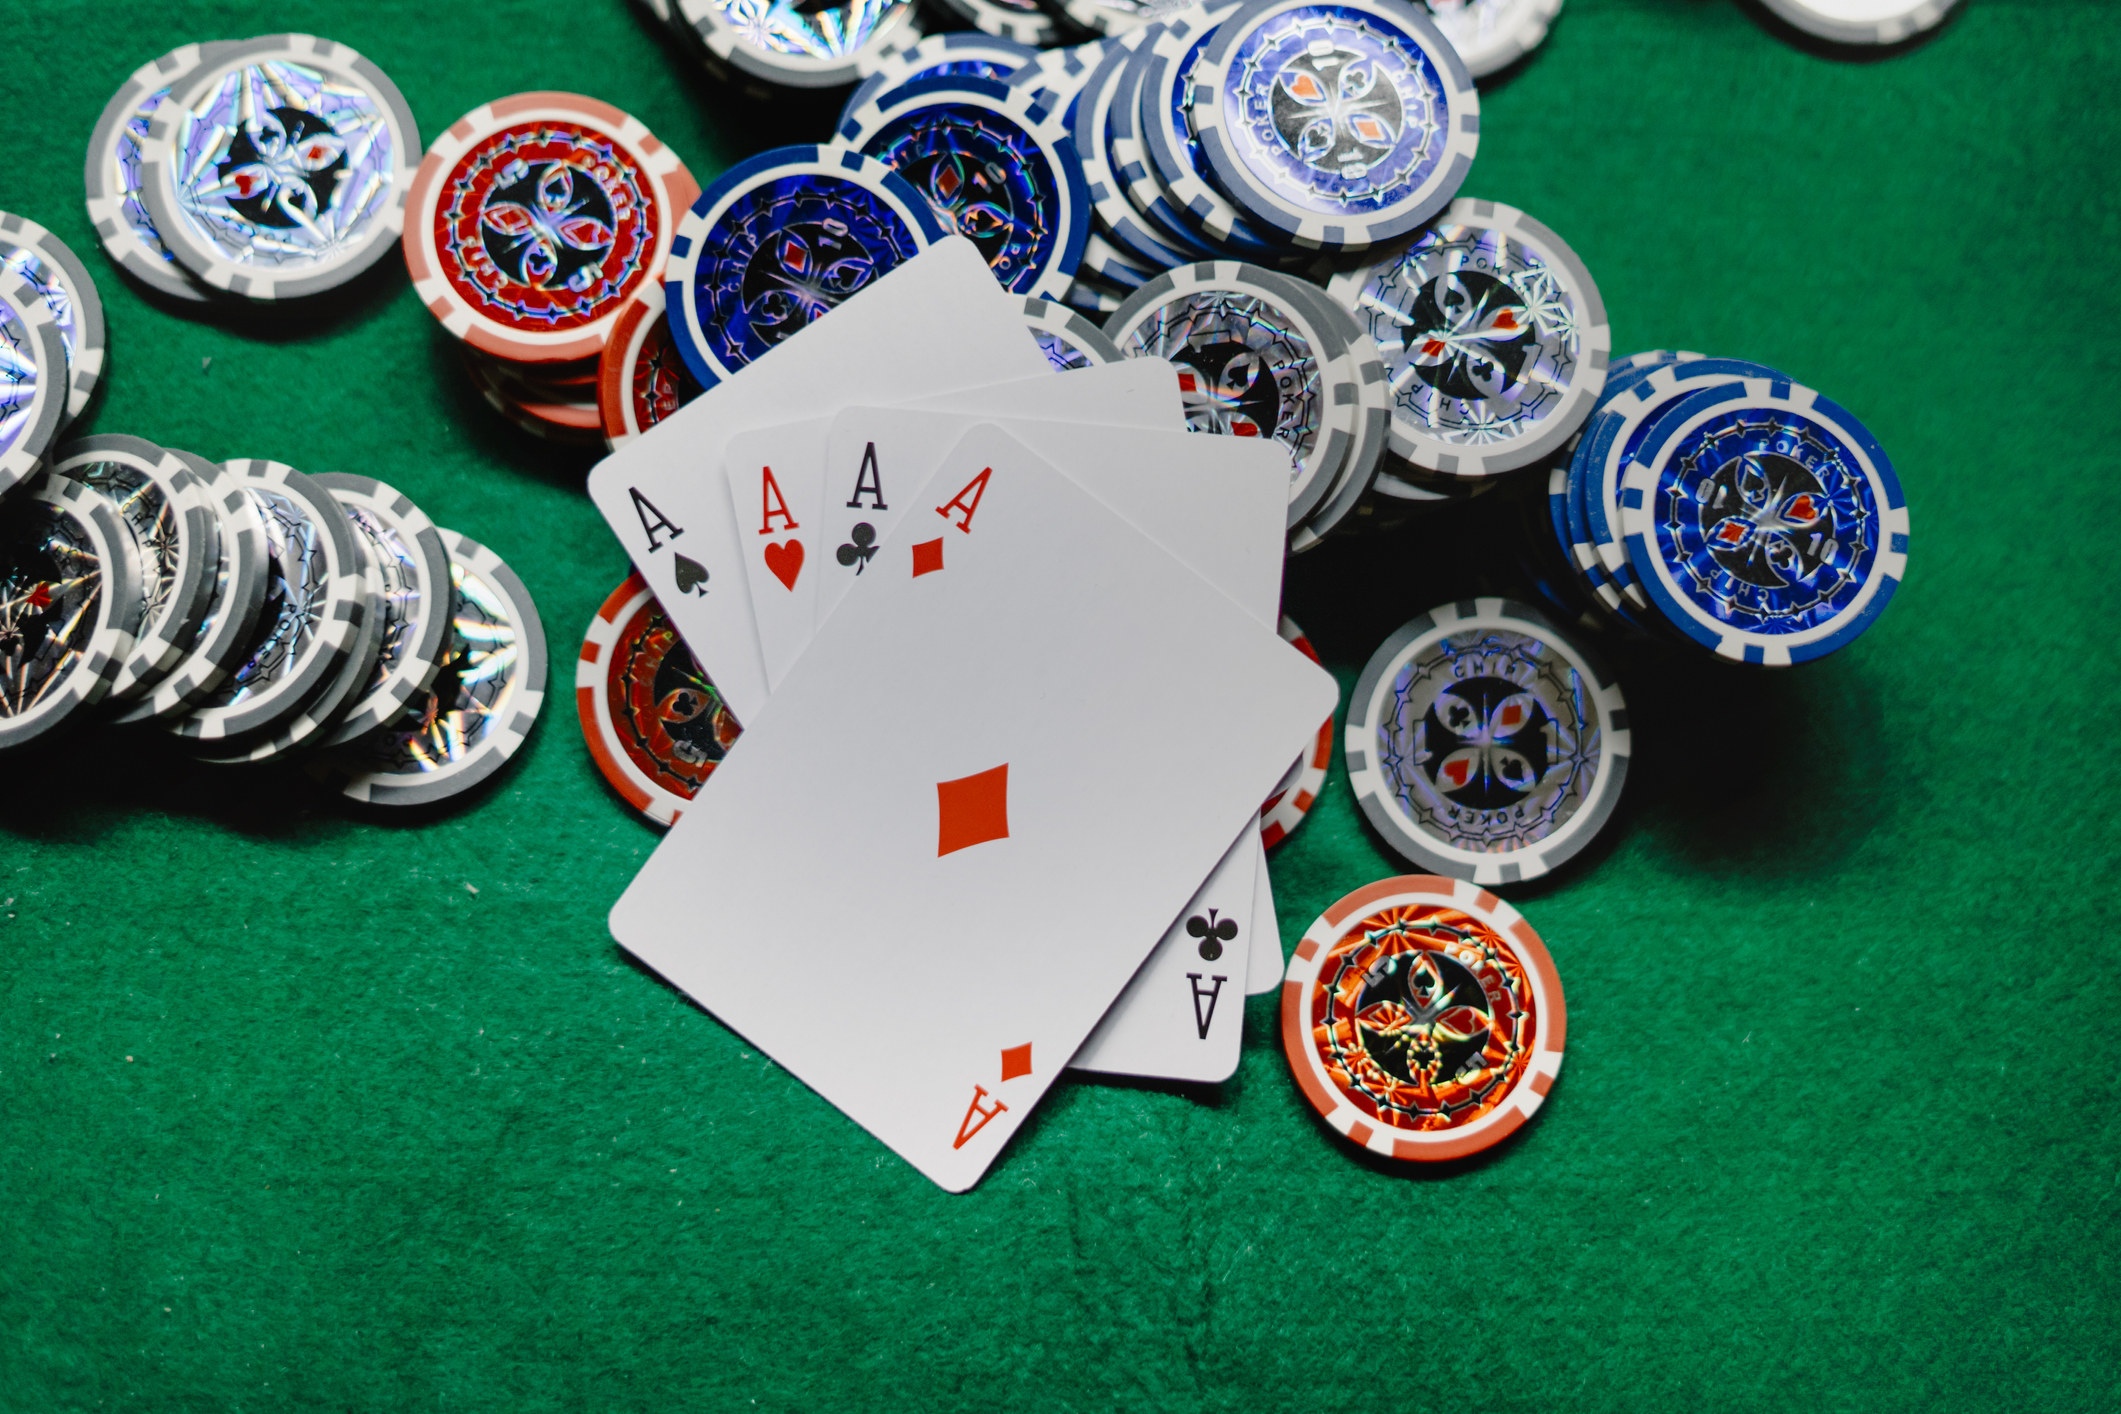 Cards and chips on a casino table